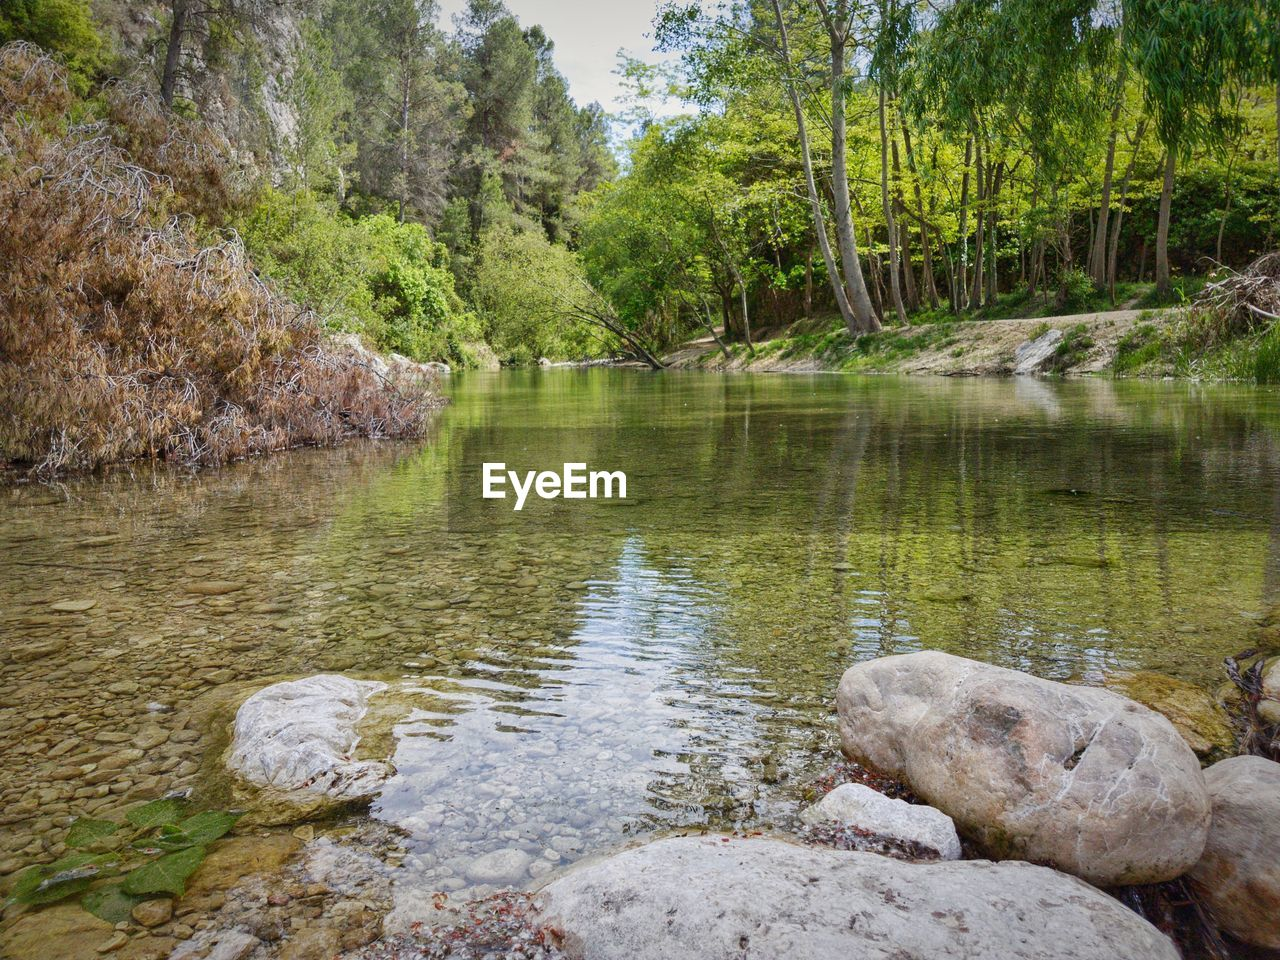 water, nature, tranquility, tranquil scene, tree, beauty in nature, lake, scenics, reflection, rock - object, outdoors, no people, day, green color, forest, growth, travel destinations, landscape, grass, sky